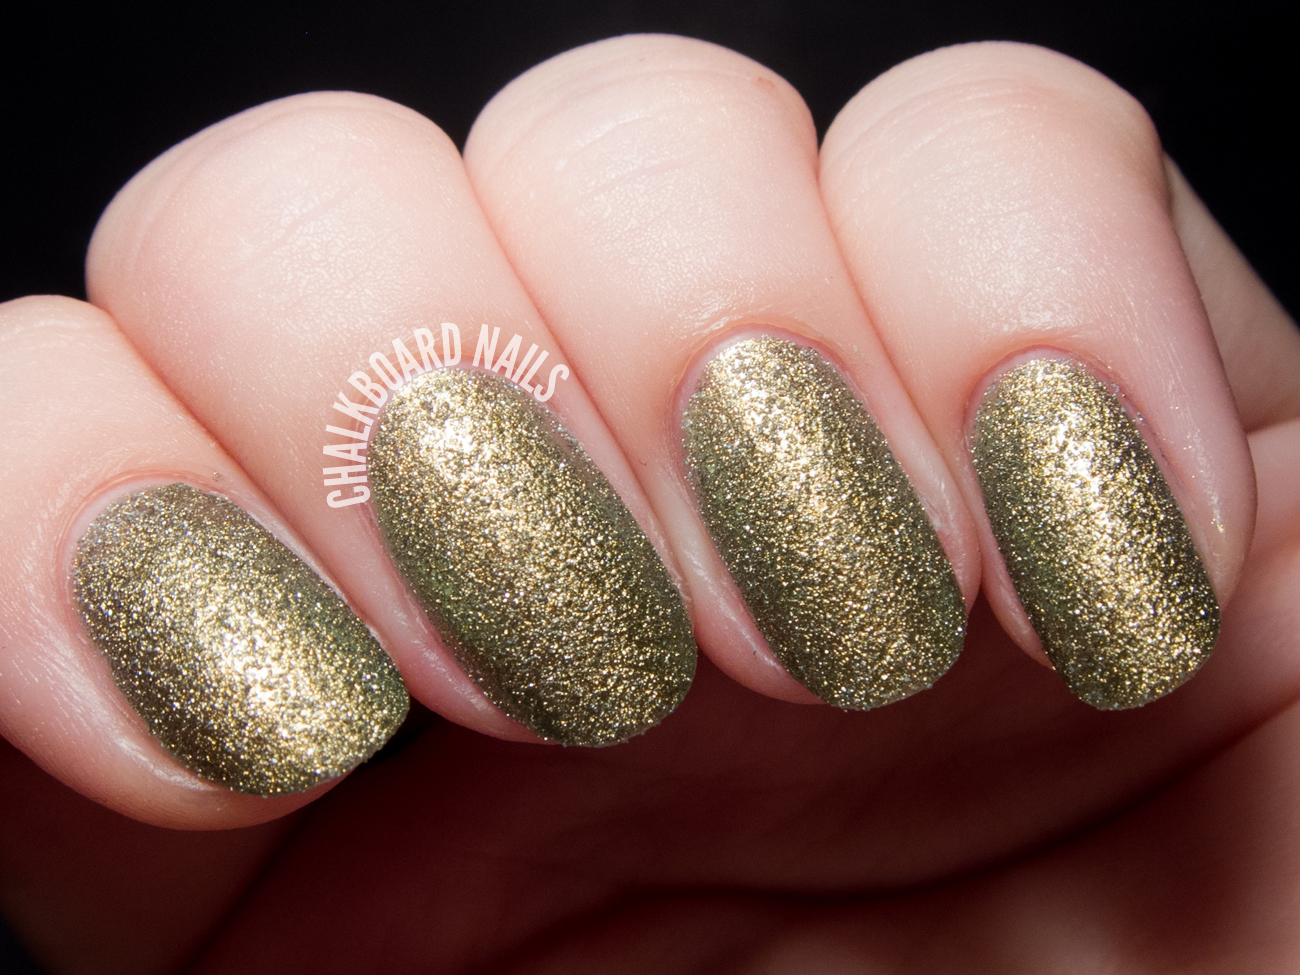 Dermelect Gilded via @chalkboardnails